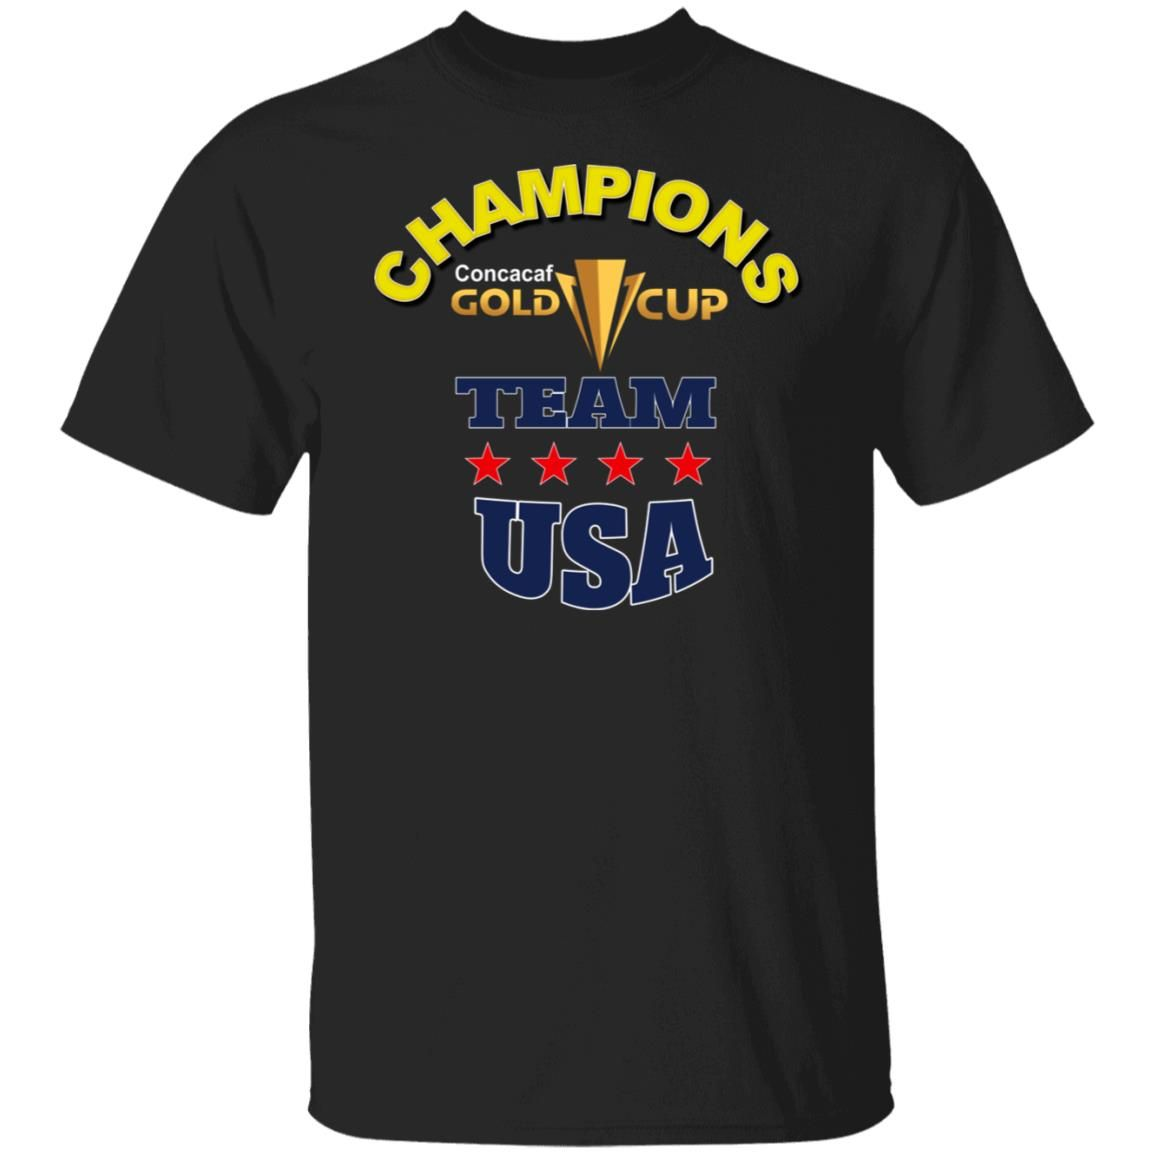 Champions Concacaf Gold Cup Team USA T-shirt